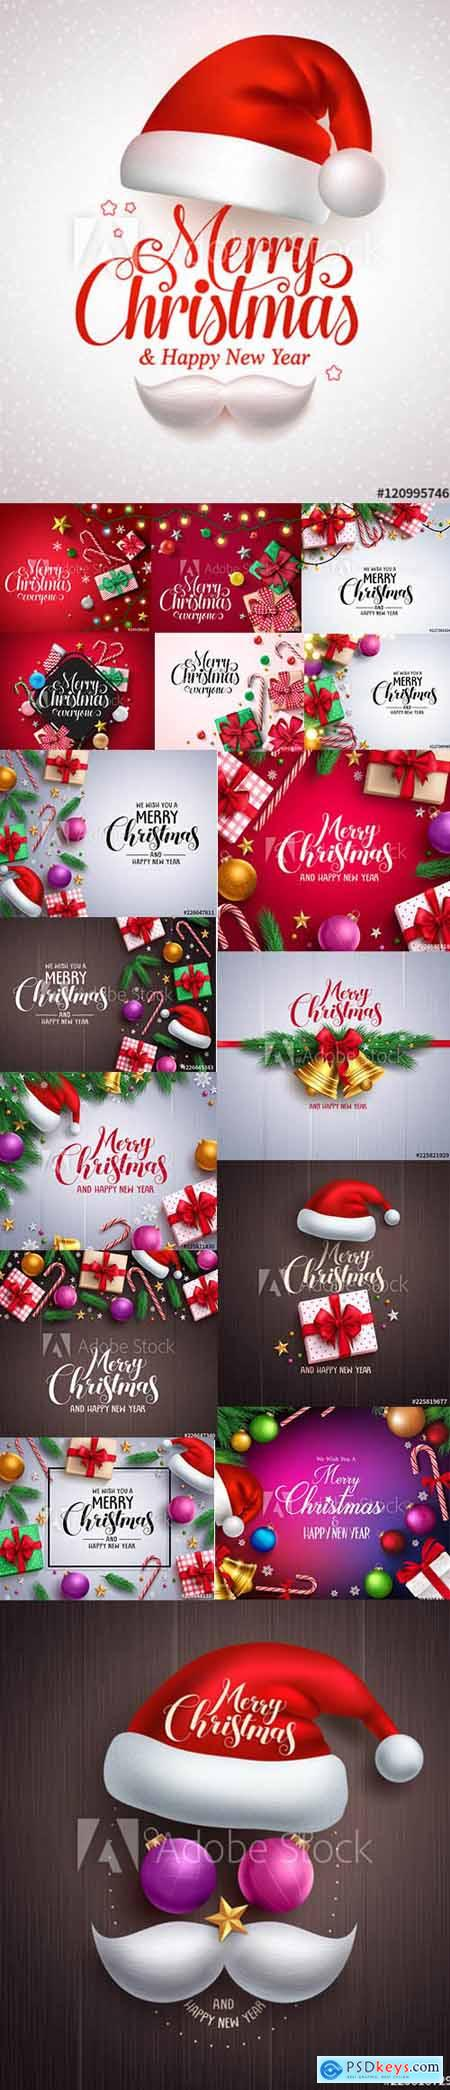 Vector Set - Merry Christmas and Happy New Year Backgrounds Template with Decor vol3